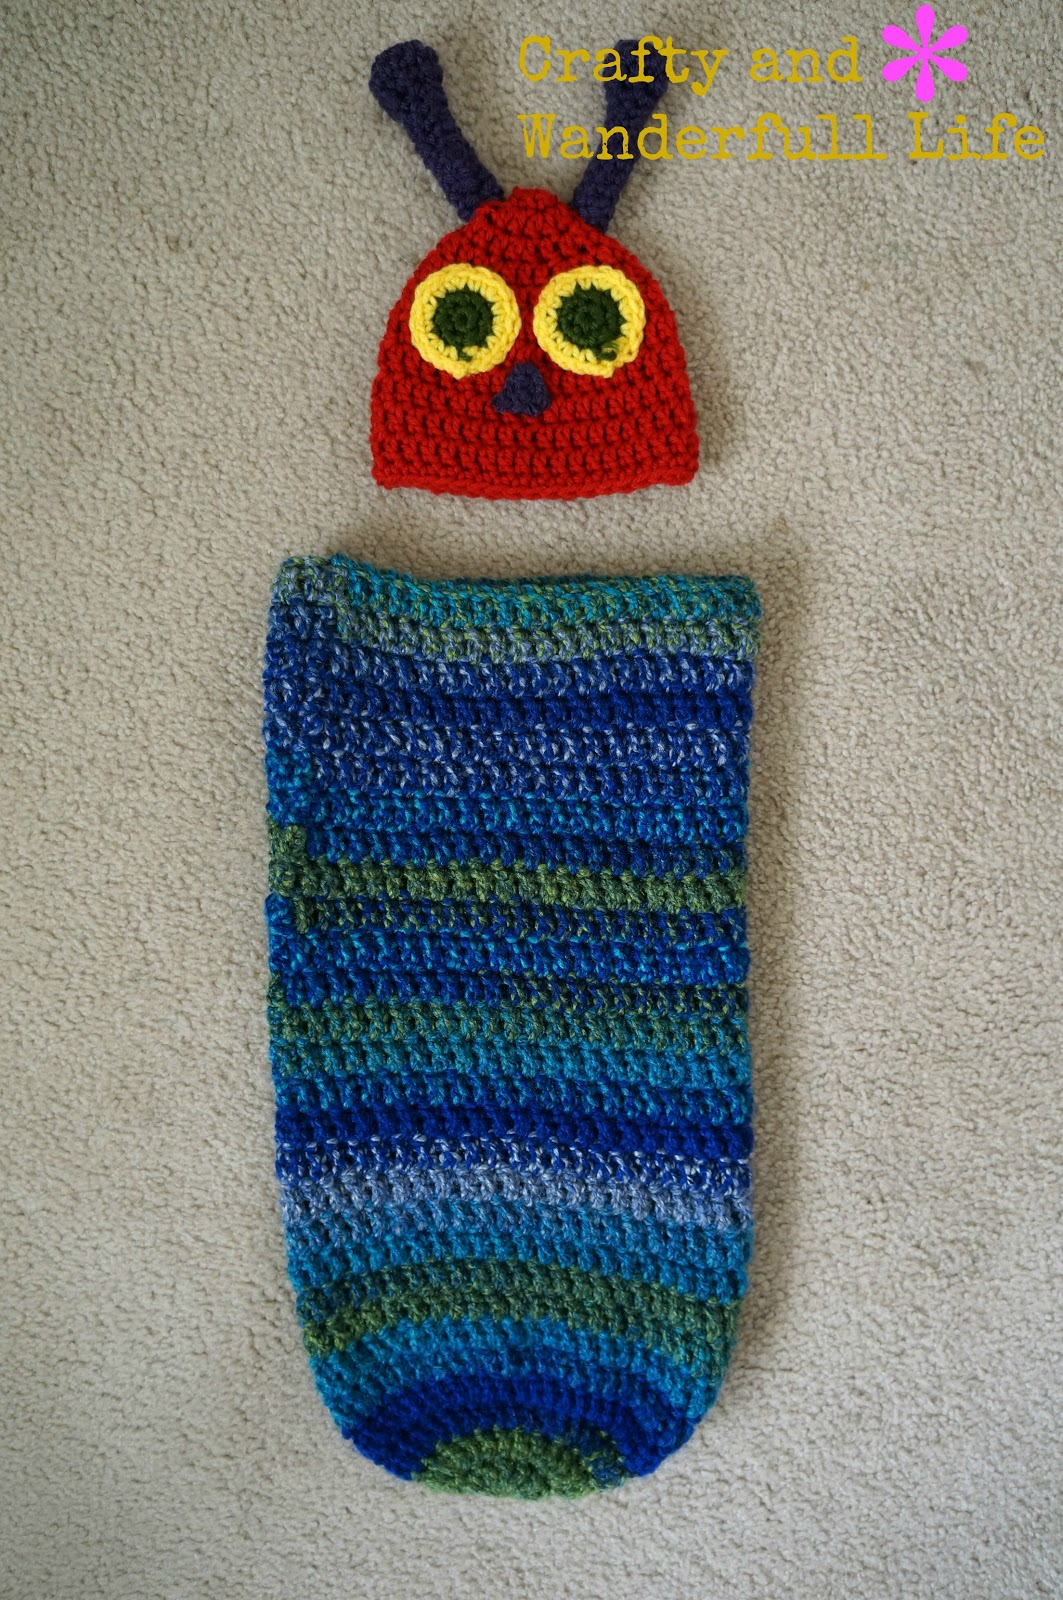 40cba6b80 Crafty And Wanderfull Life: Crochet: Very Hungry Caterpillar Cocoon ...